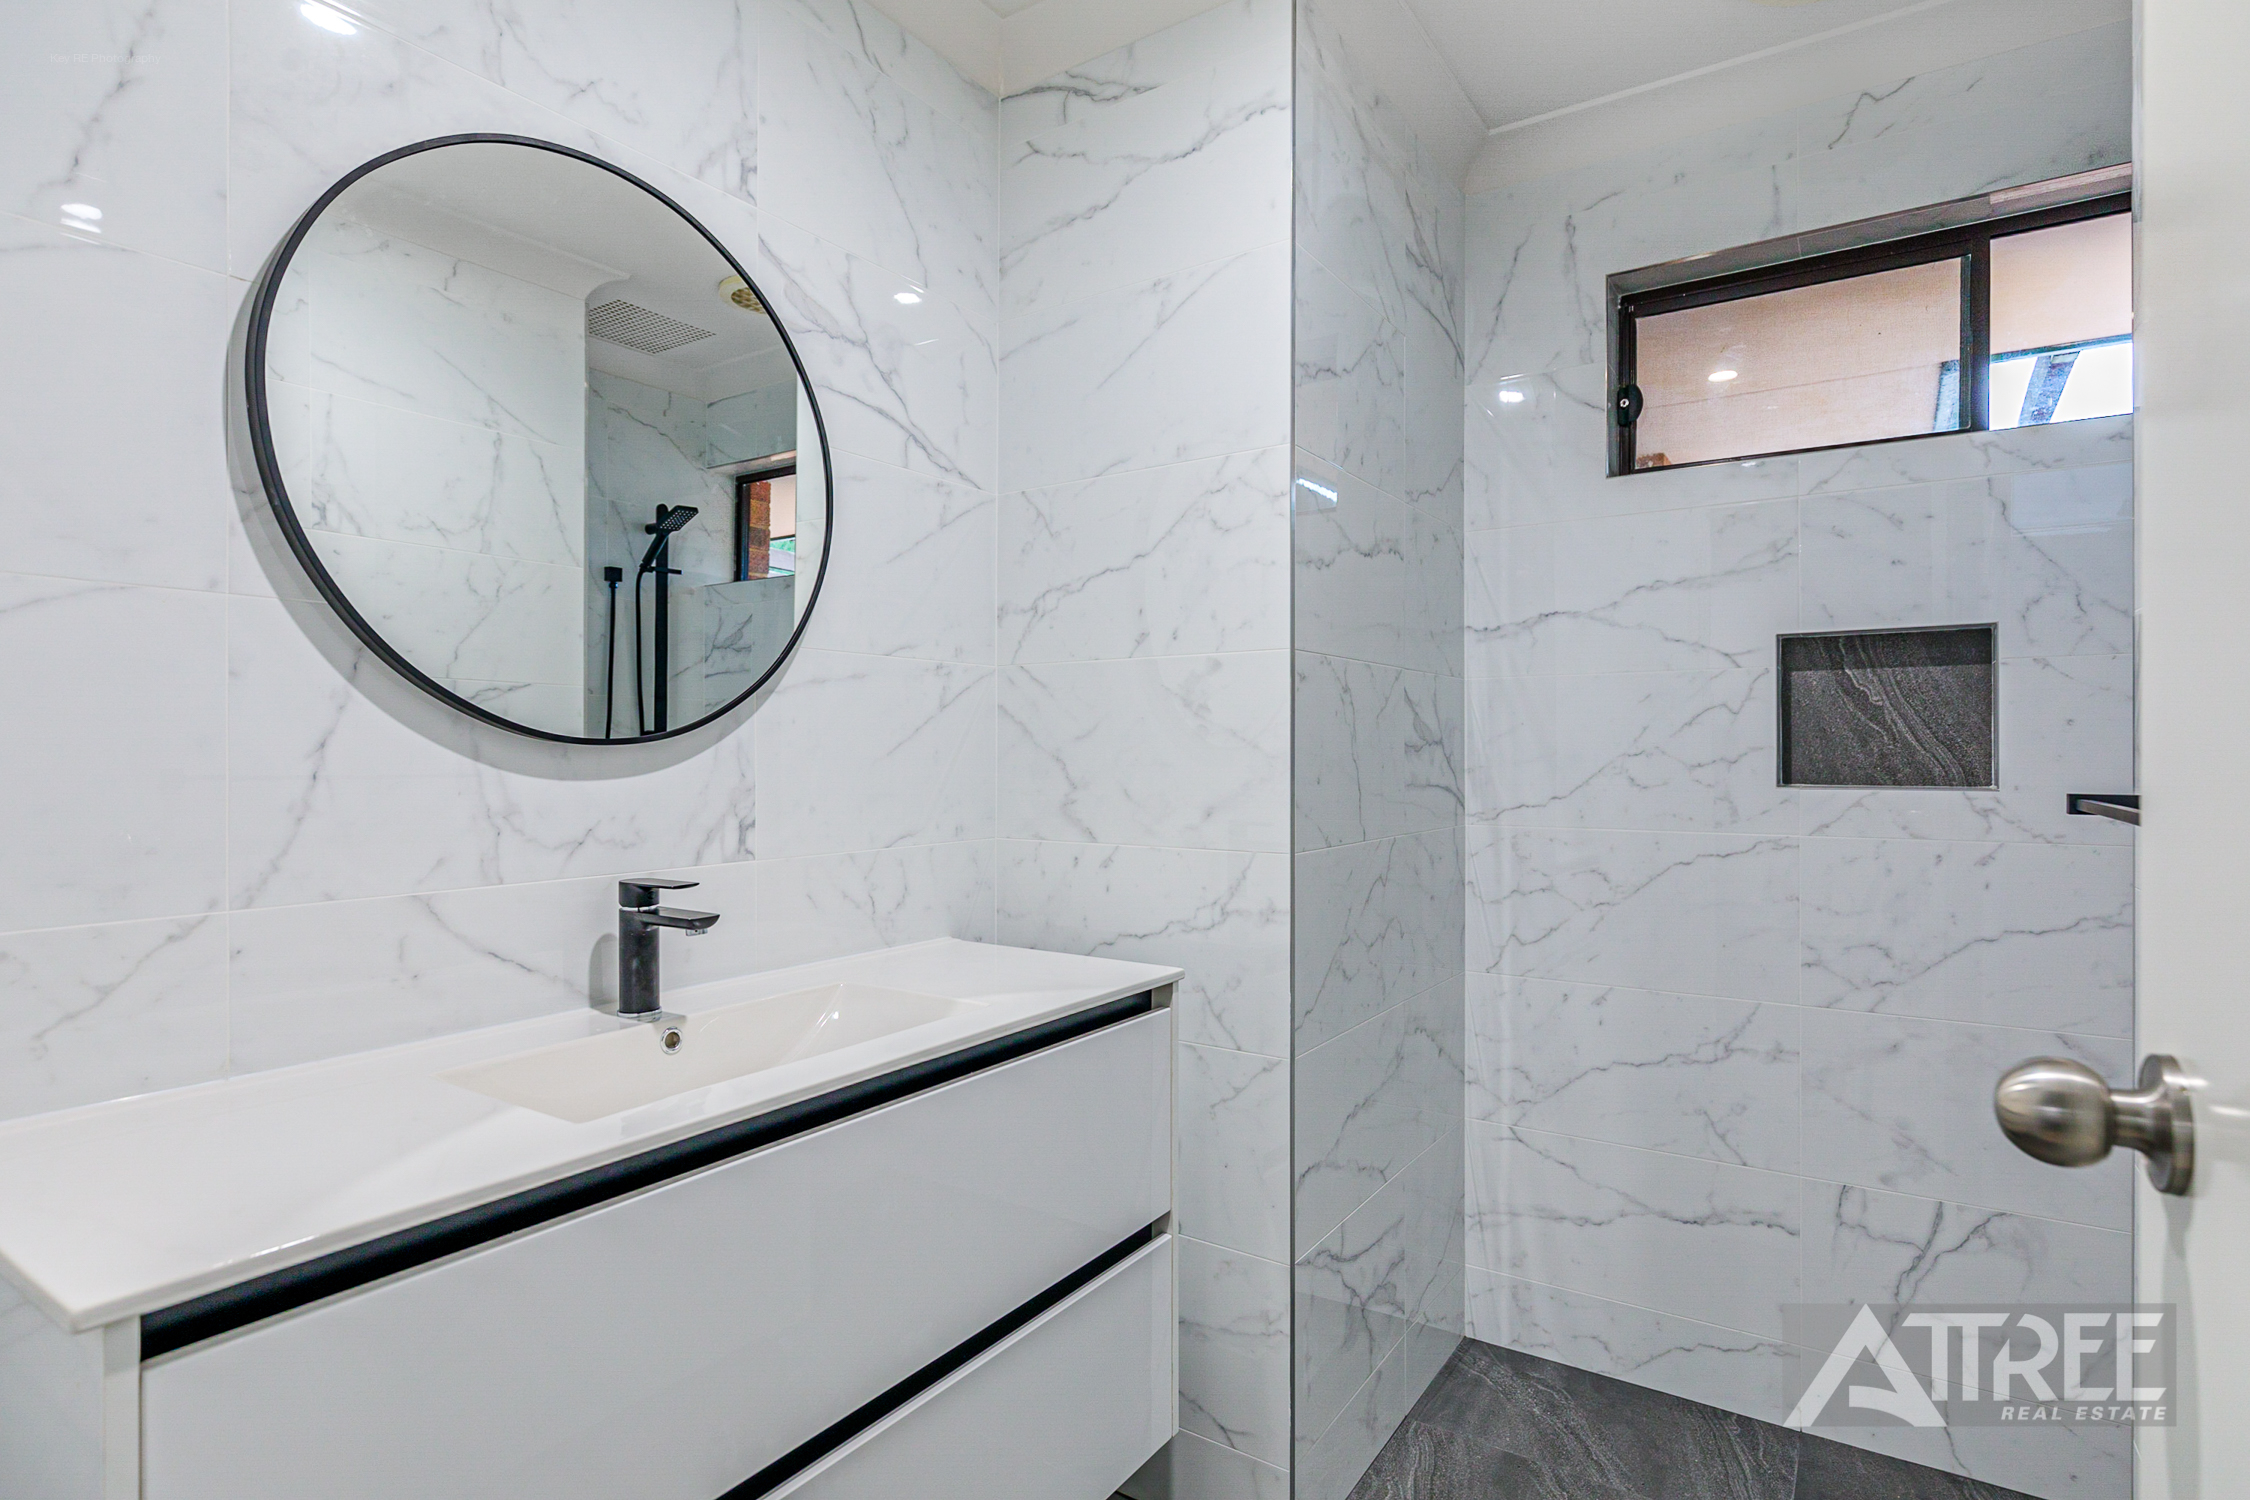 Property for sale in GOSNELLS, 3 Starick Way : Attree Real Estate